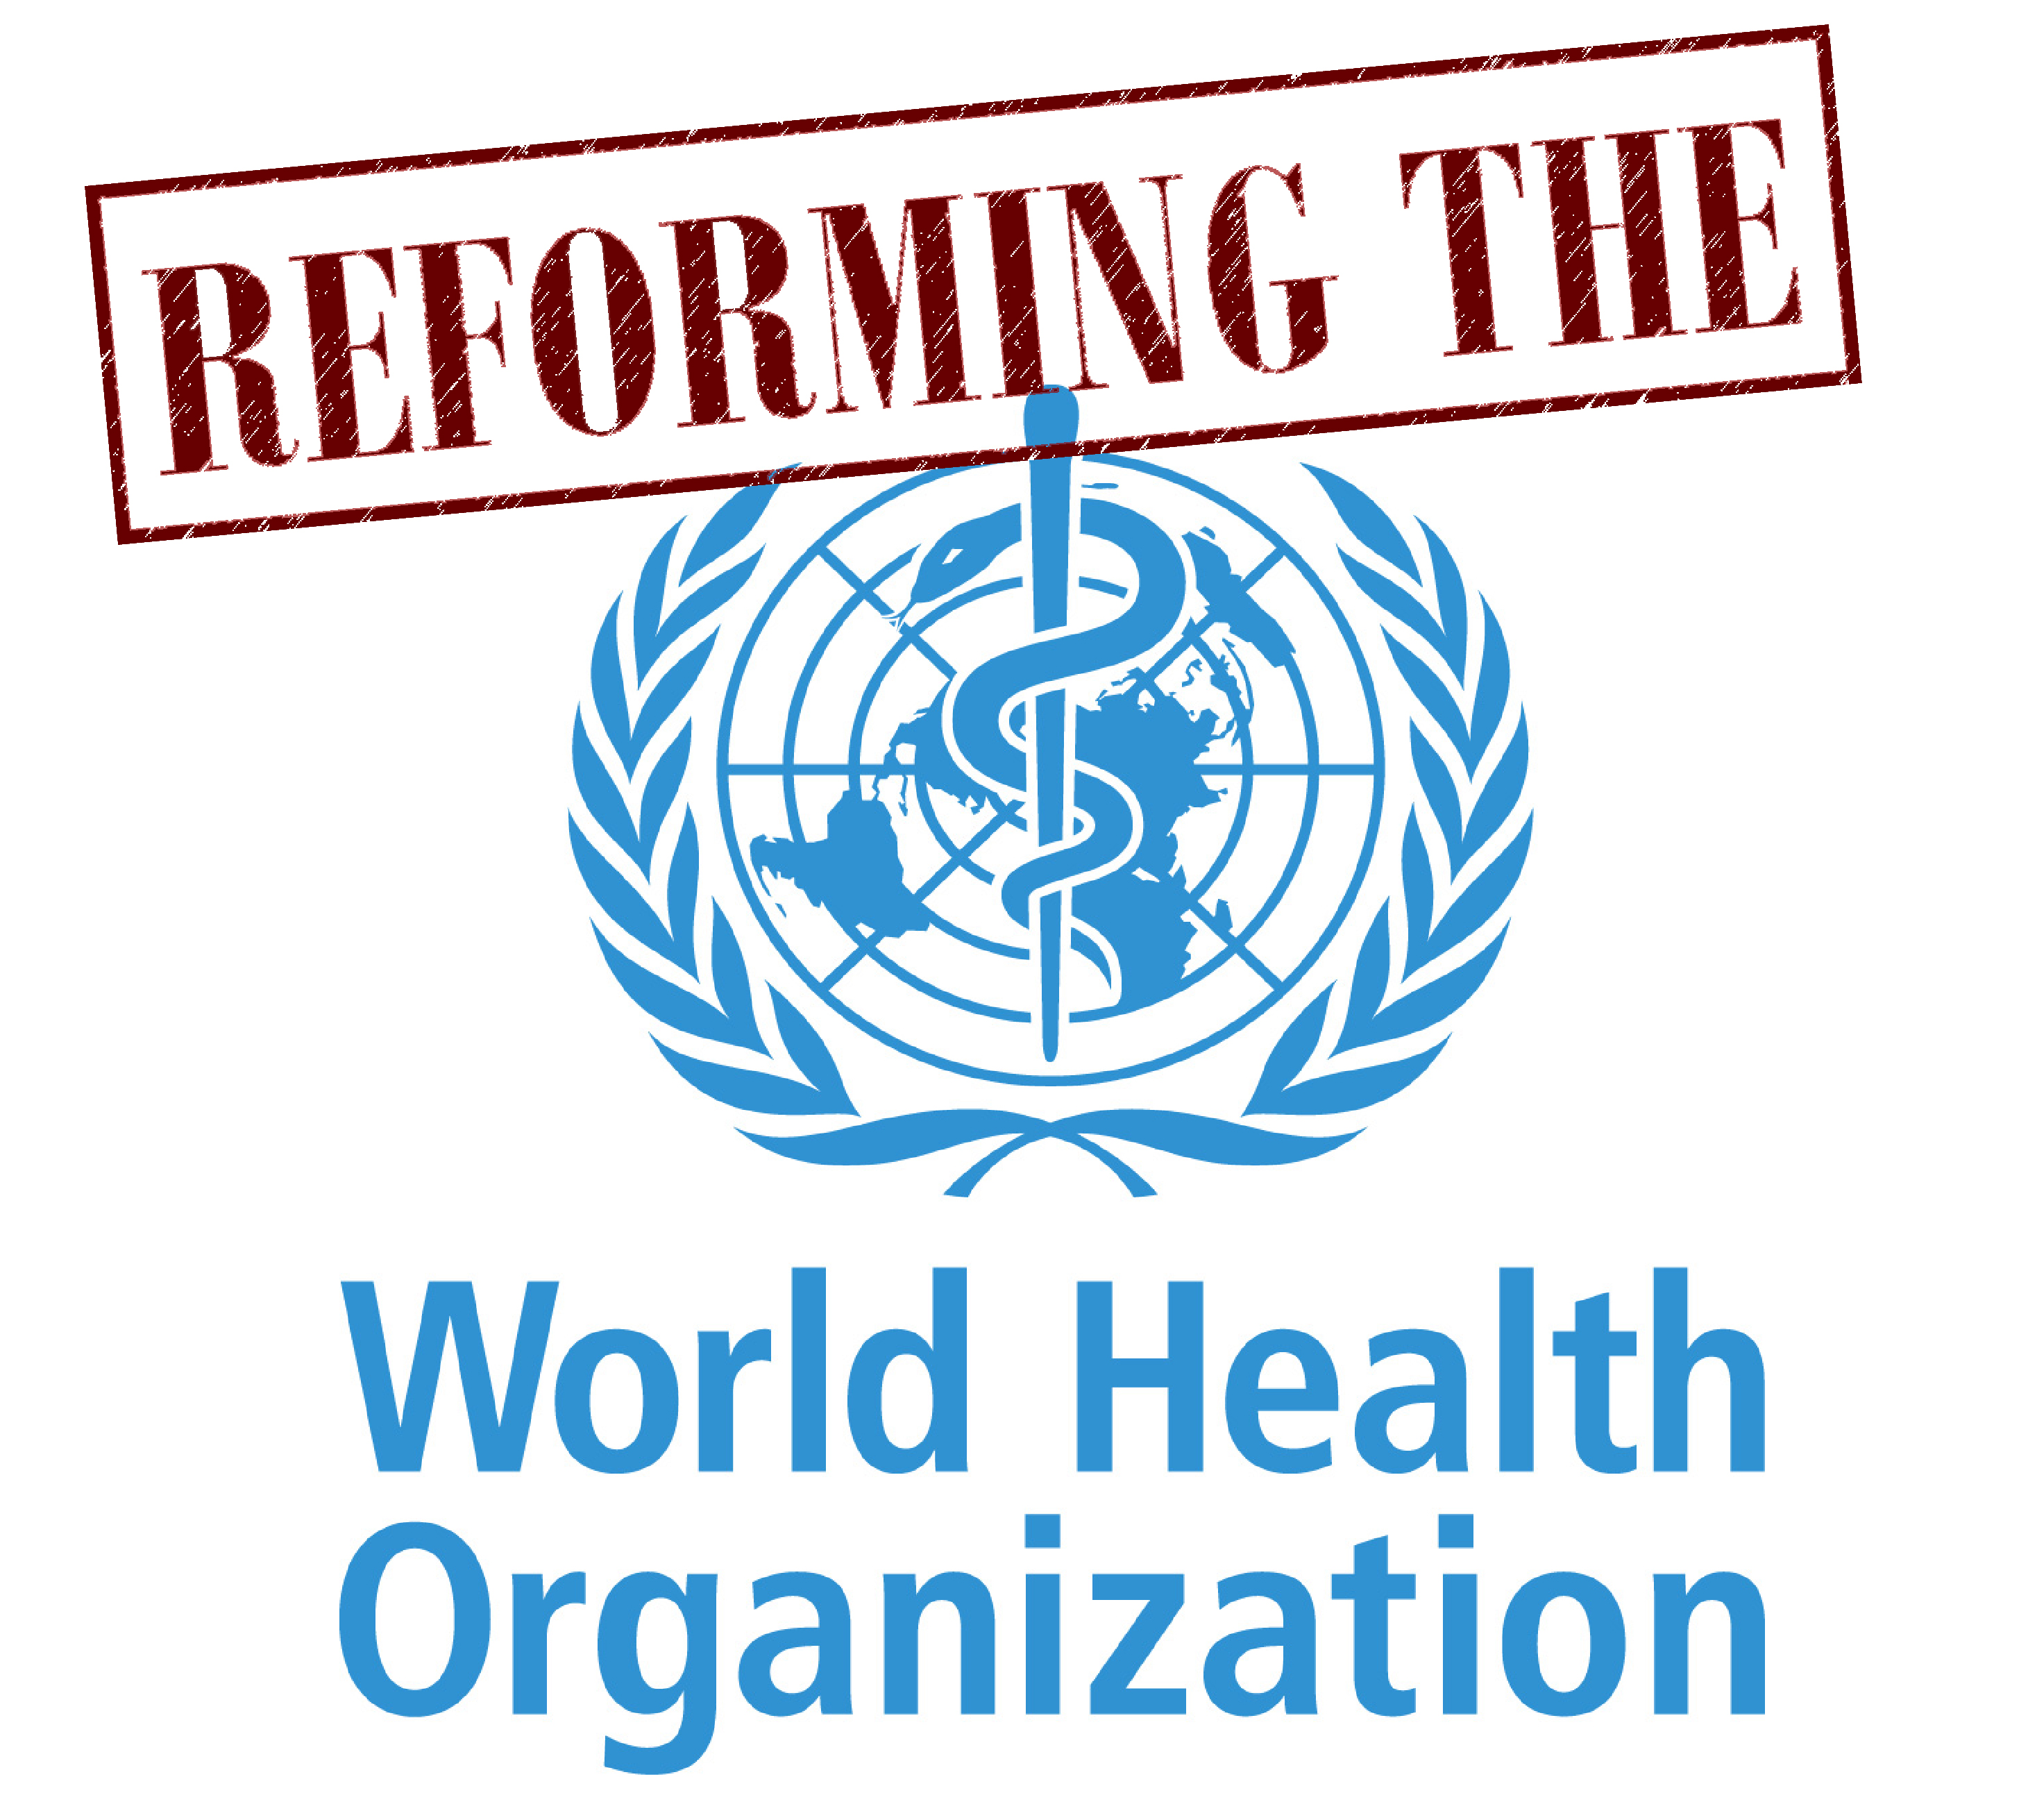 Successful Governance Reform and Its Consequences:  How the Historical Drive for Shorter Meetings and More Time Efficiency Reverberates in Contemporary World Health Assemblies